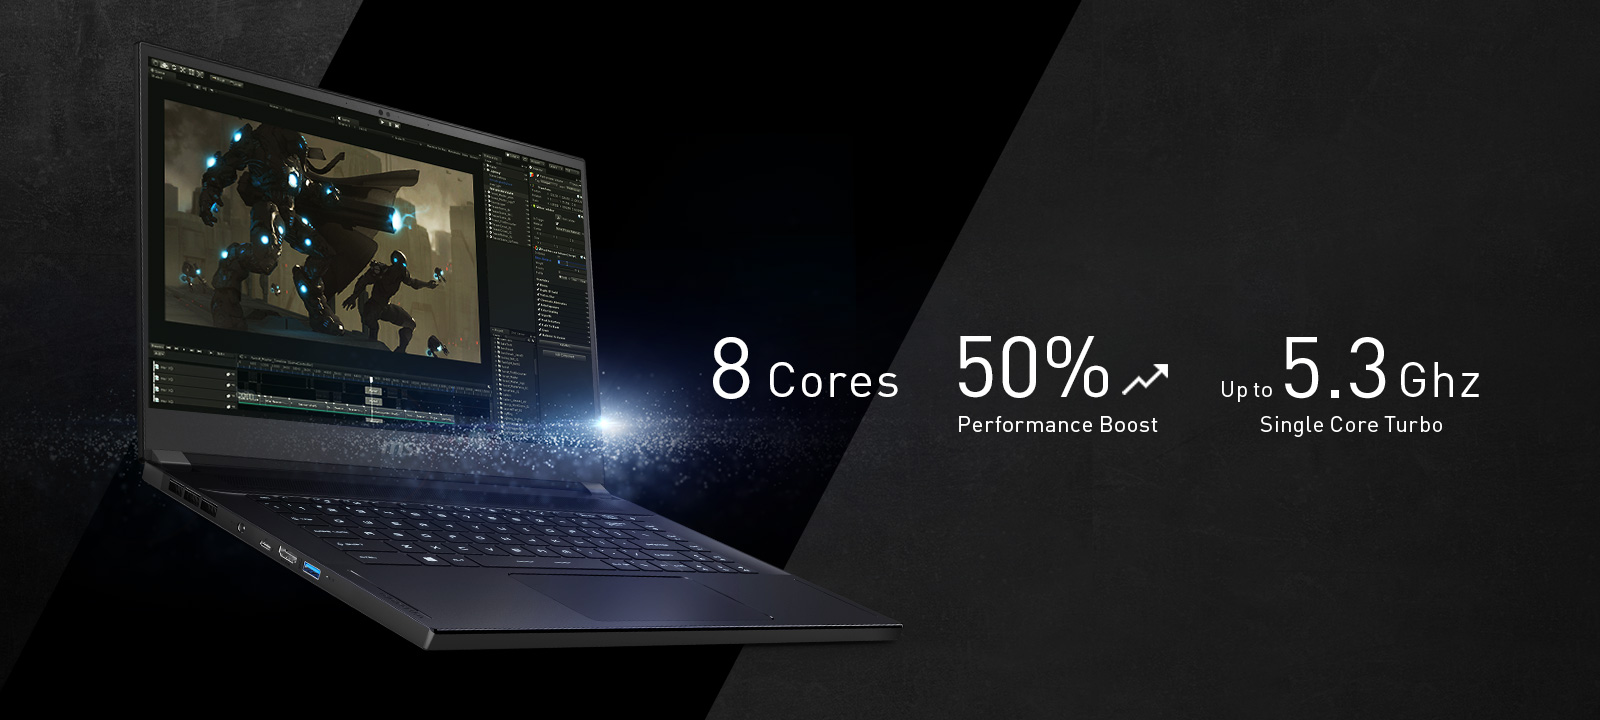 GS66 Stealth widely opened to right. Software UI is showing on the screen. Text right it says: 8 Cores, 50% Performance boost, Upto 5.3GHz Single Core Turbo.